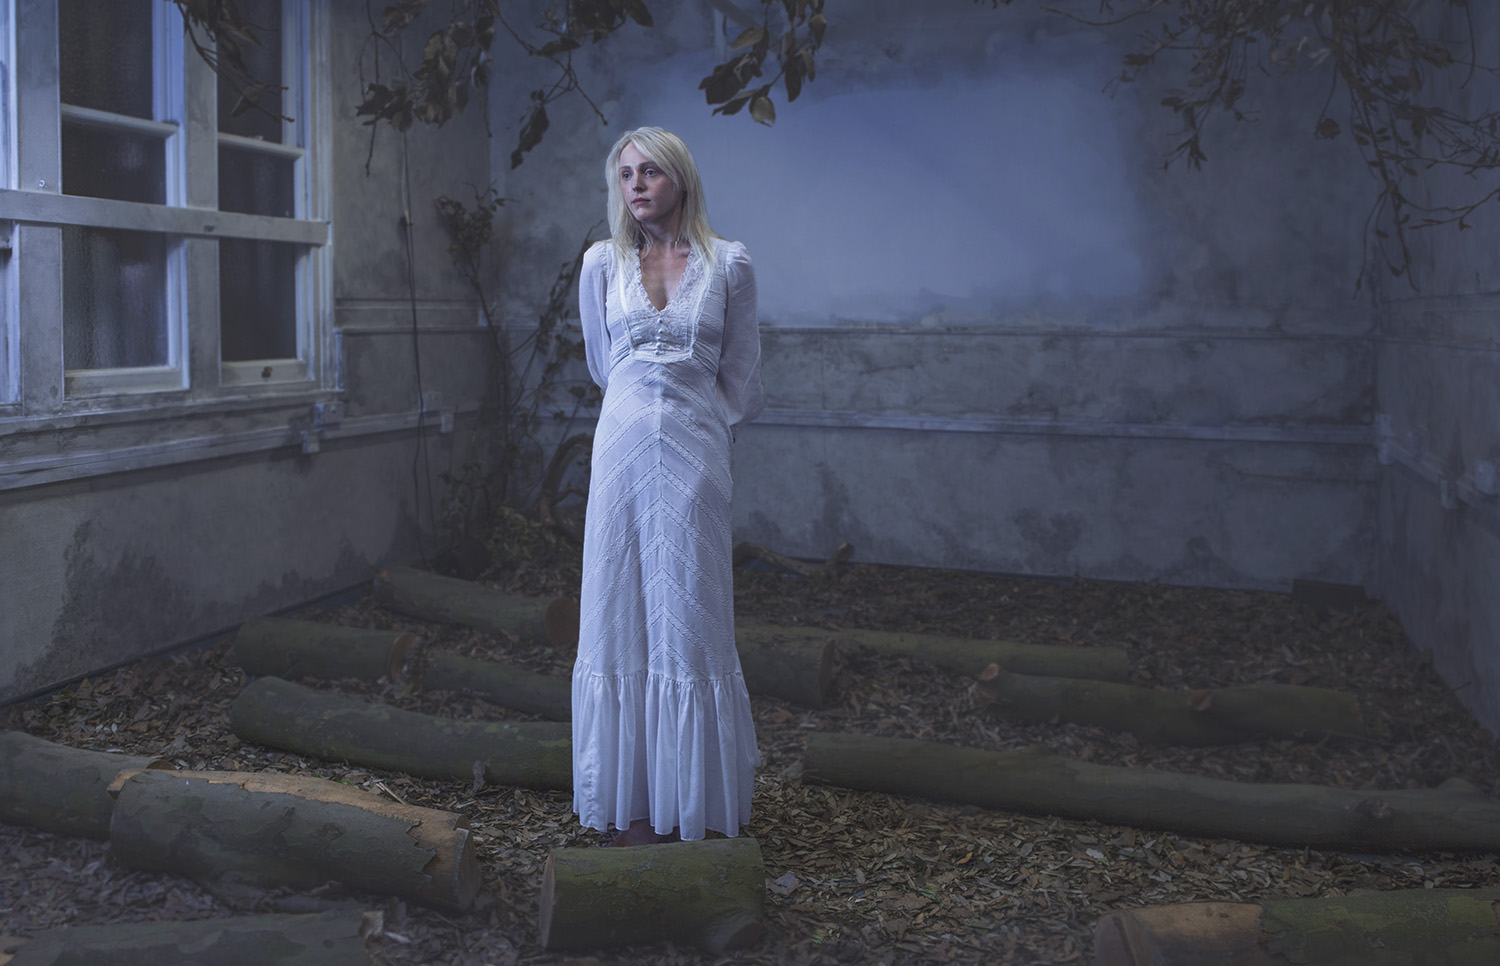 Laura Marling photographed at the Secret Music event in East London